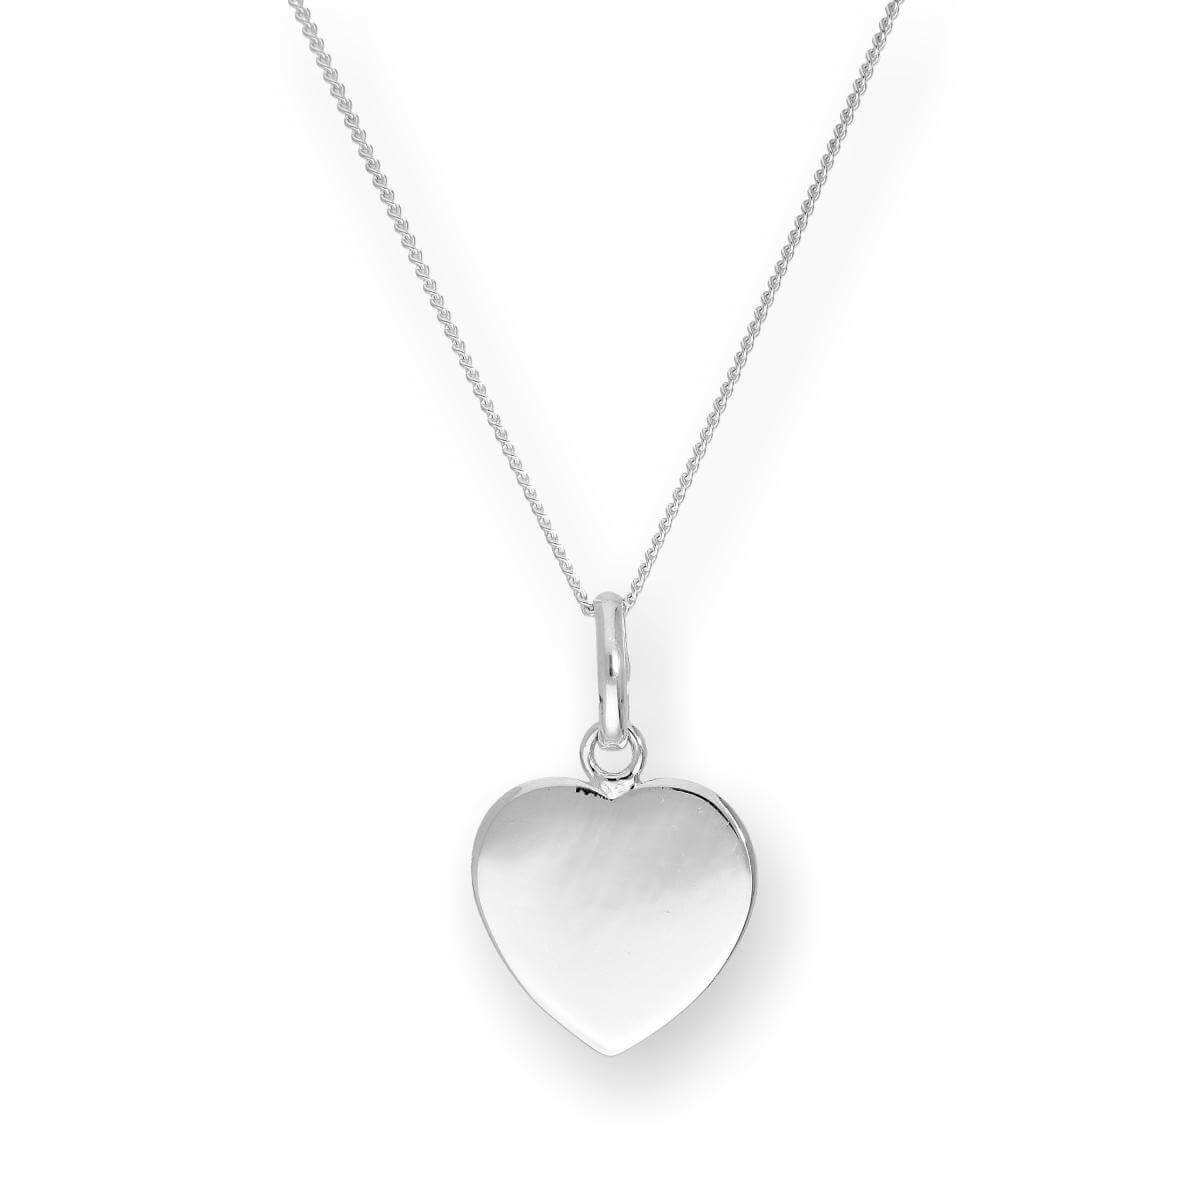 Sterling Silver Engravable Heart Pendant Necklace 16 - 22 Inches